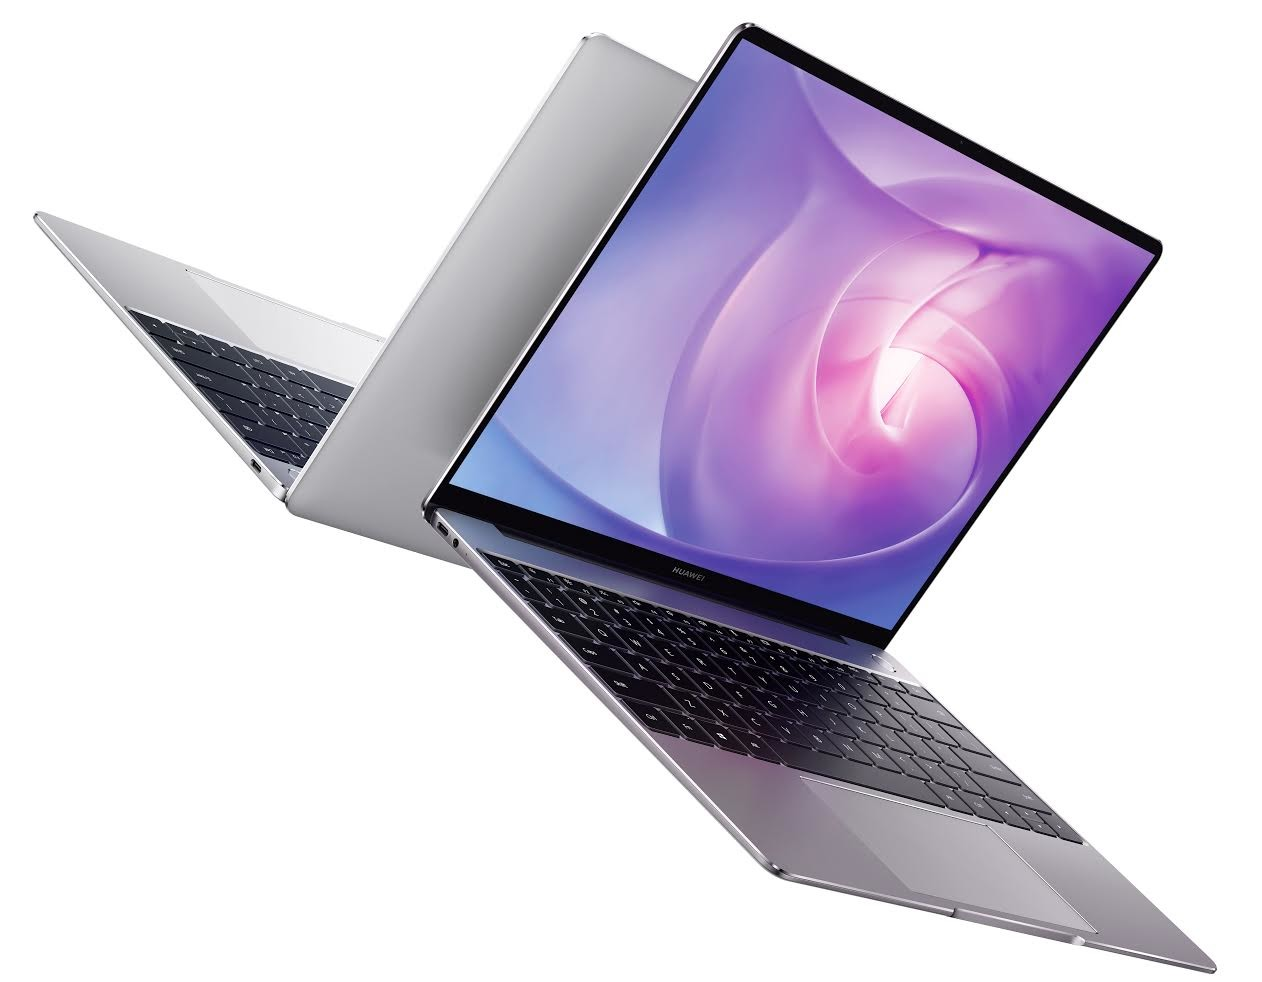 Huawei MateBook X, Huawei MateBook, Huawei MateBook 13, Laptop, , Huawei, 512gb, Windows 10, 256gb, 13 in, huawei matebook 13, Laptop, Violet, Purple, Technology, Electronic device, Logo, Netbook, Computer, Graphics, Personal computer